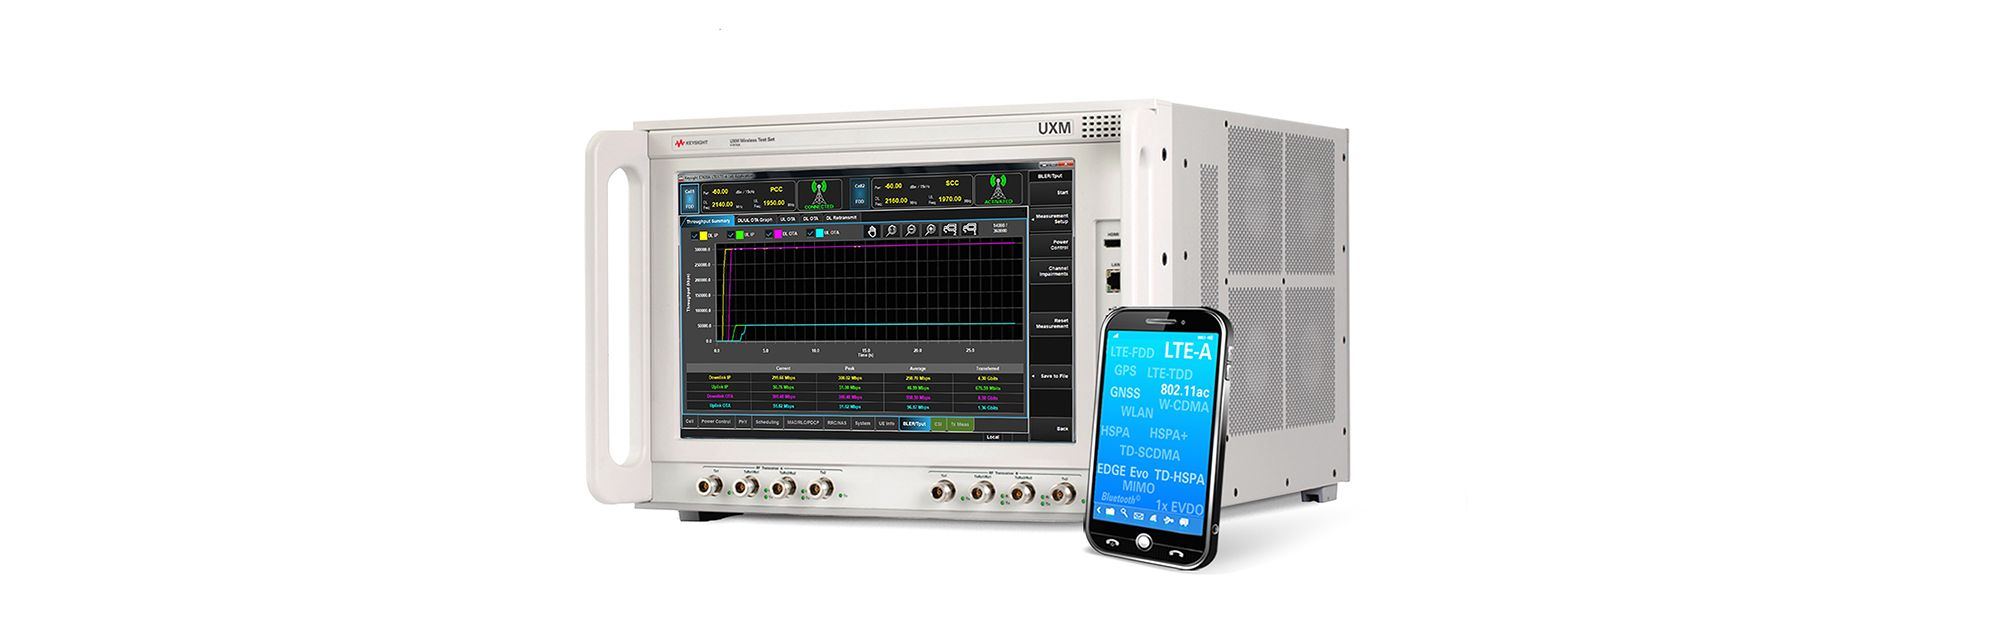 4G, 3G and 2G Device Testing